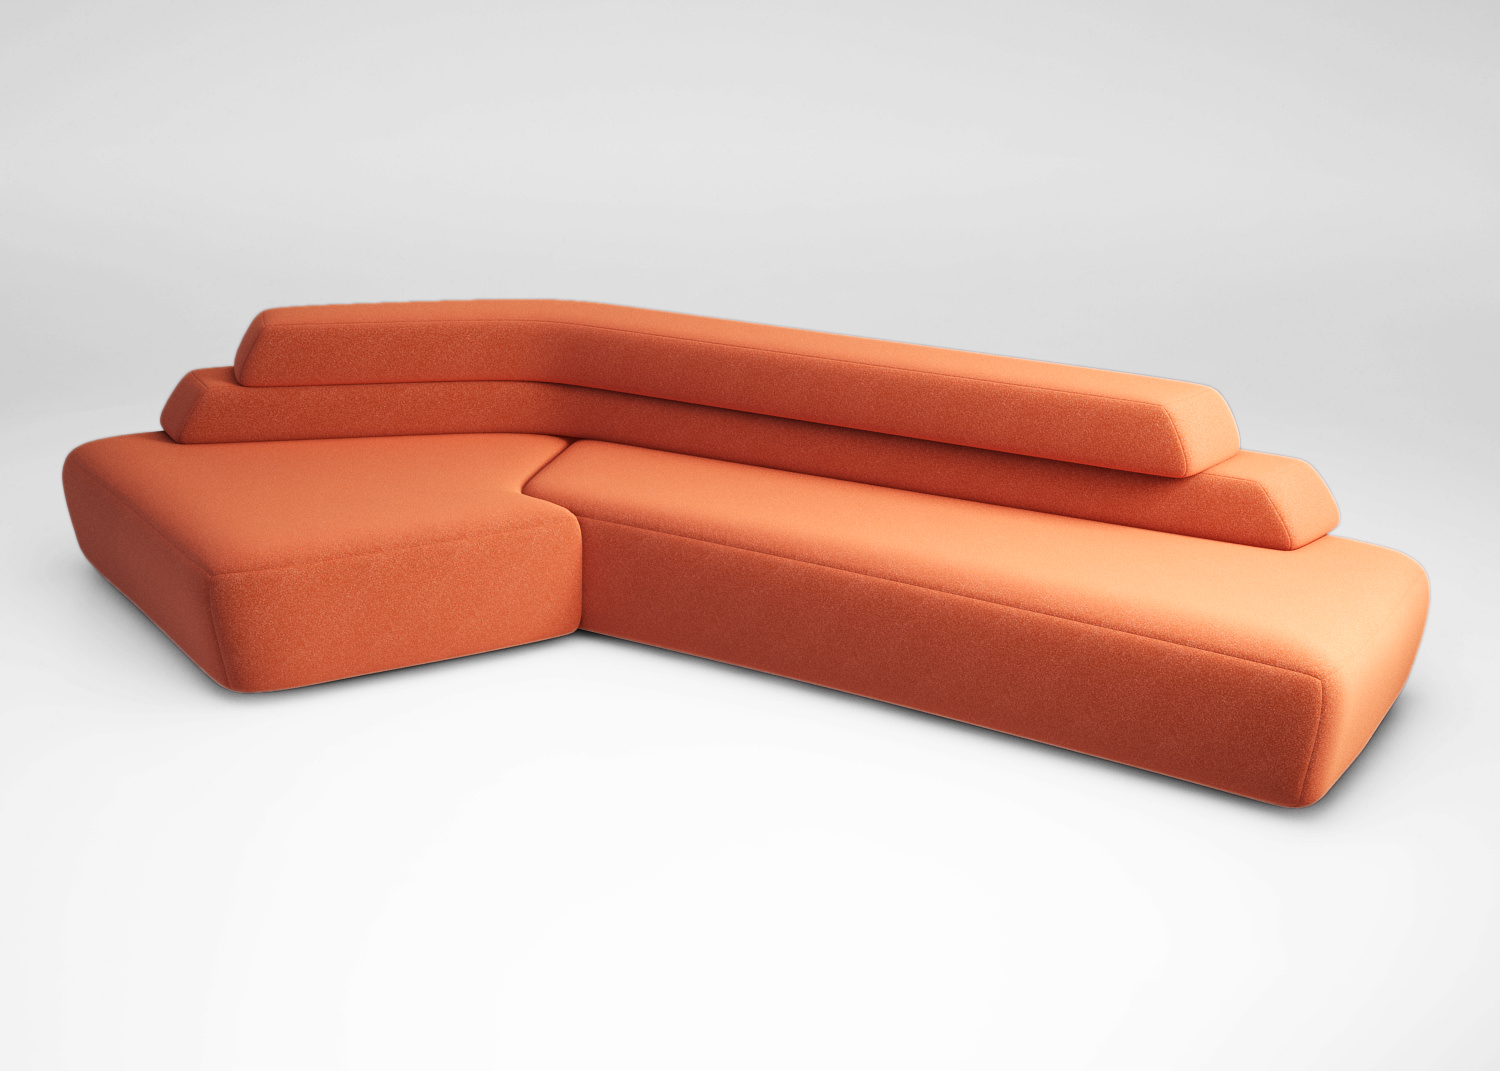 Sofa Set Images Free Download Moroso Rift Sofa Set 3d Model